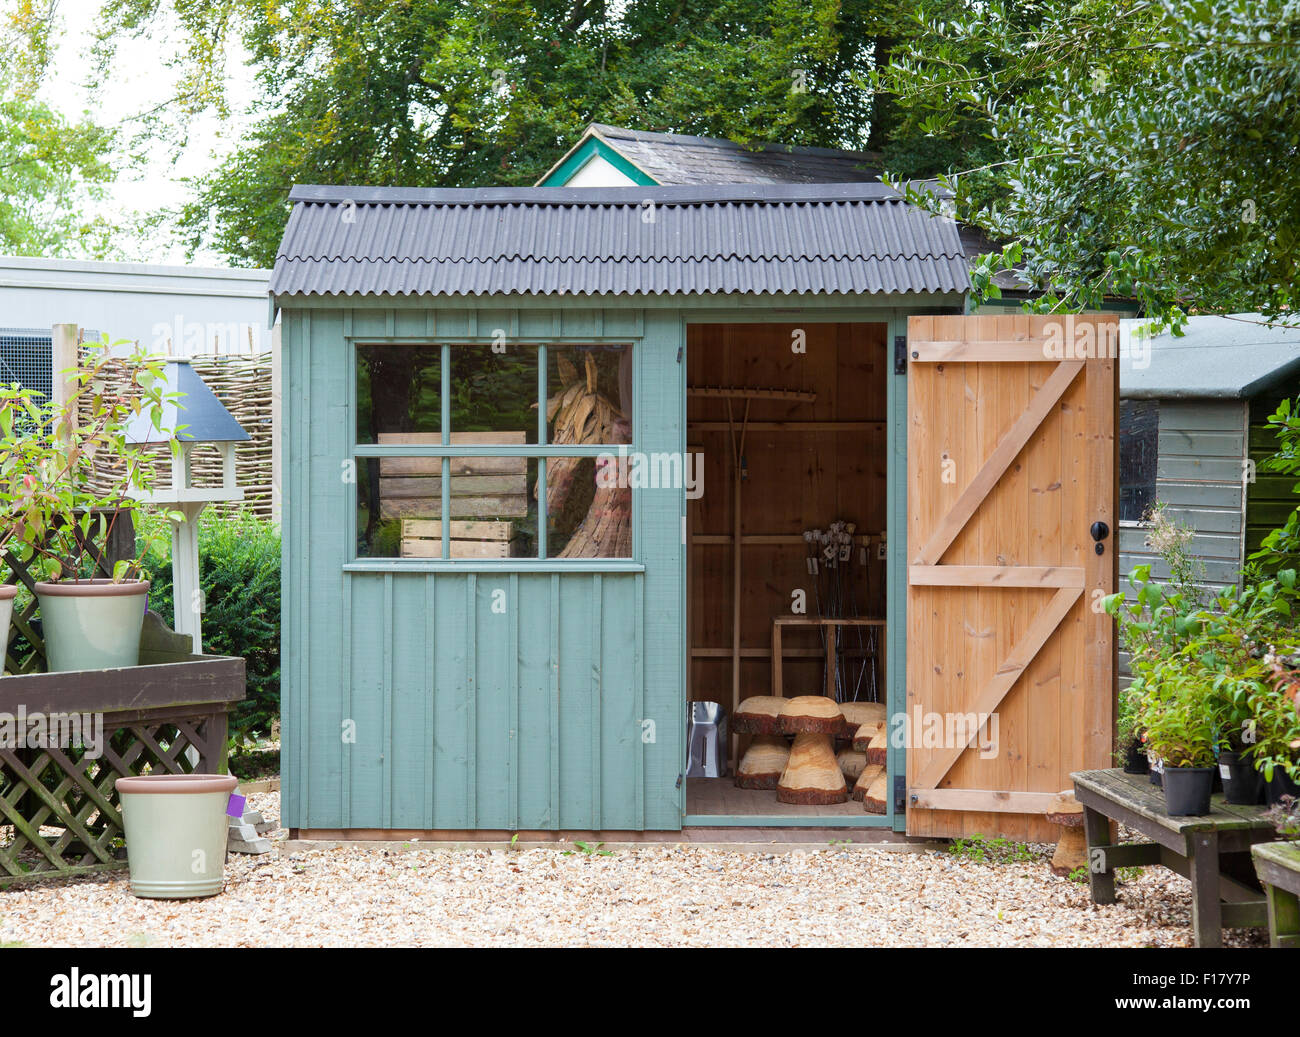 A beautiful garden shed surrounded by pots and plants